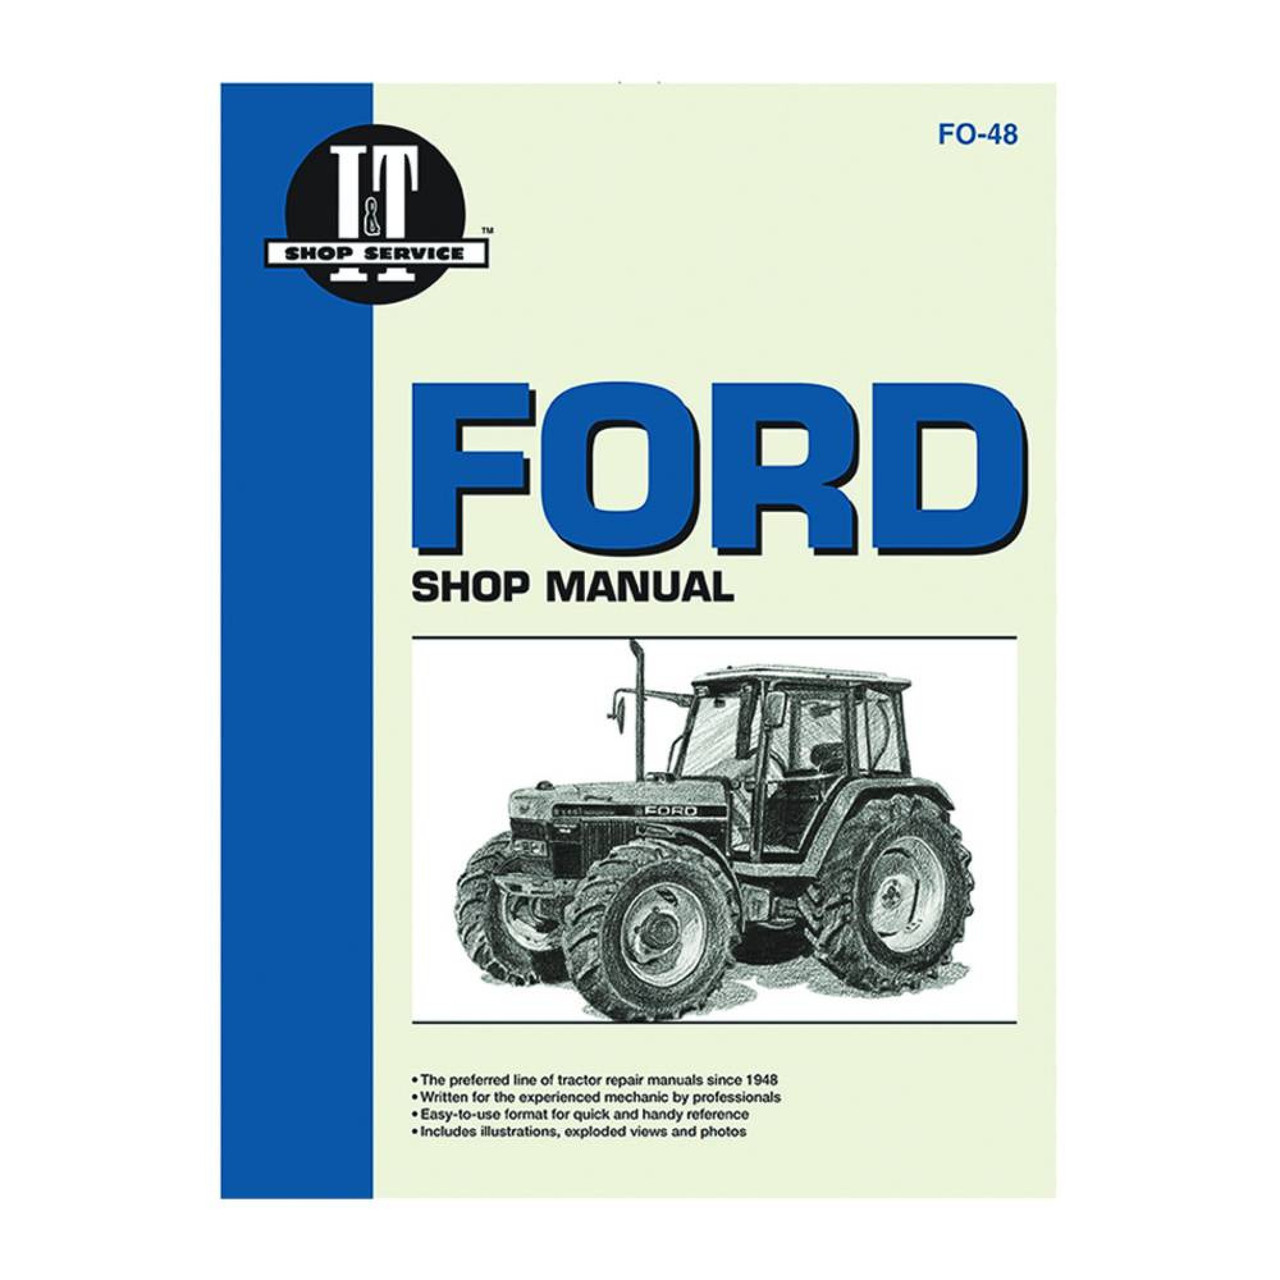 900 Ford Tractor Wiring Diagram | Wiring Liry Old Ford Tractors Series Wiring Diagram on